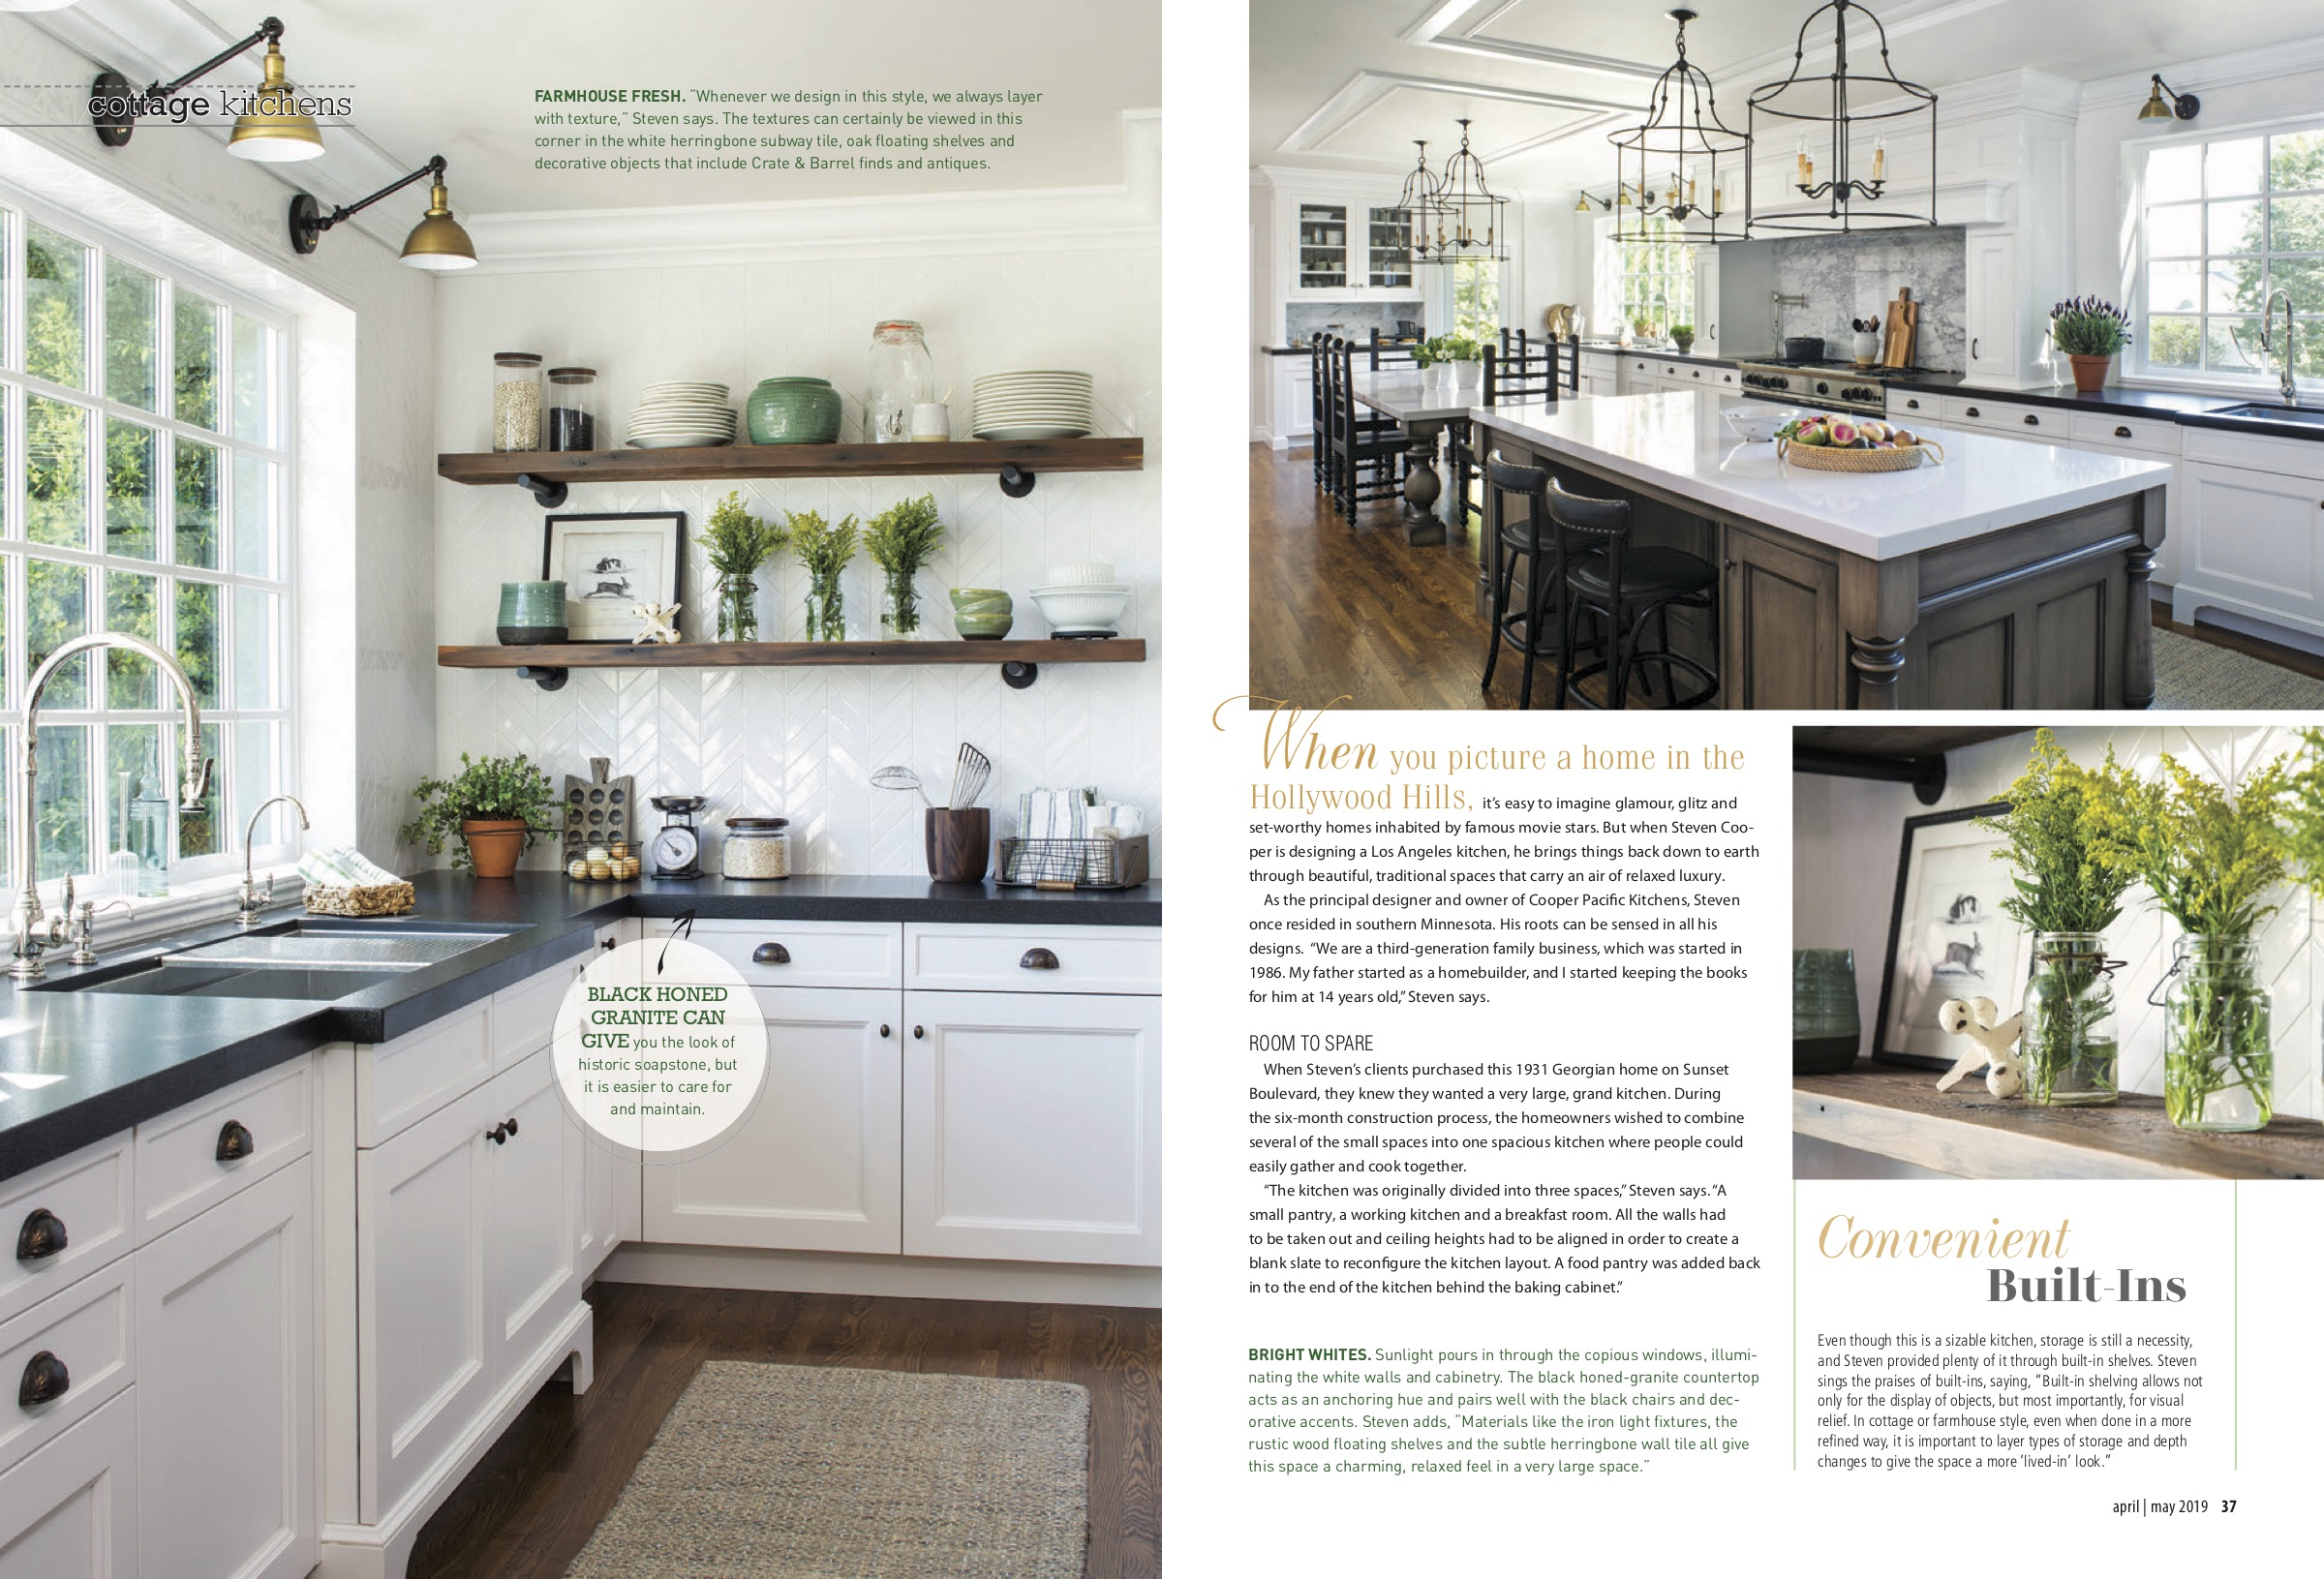 Journal Cooper Pacific Kitchens